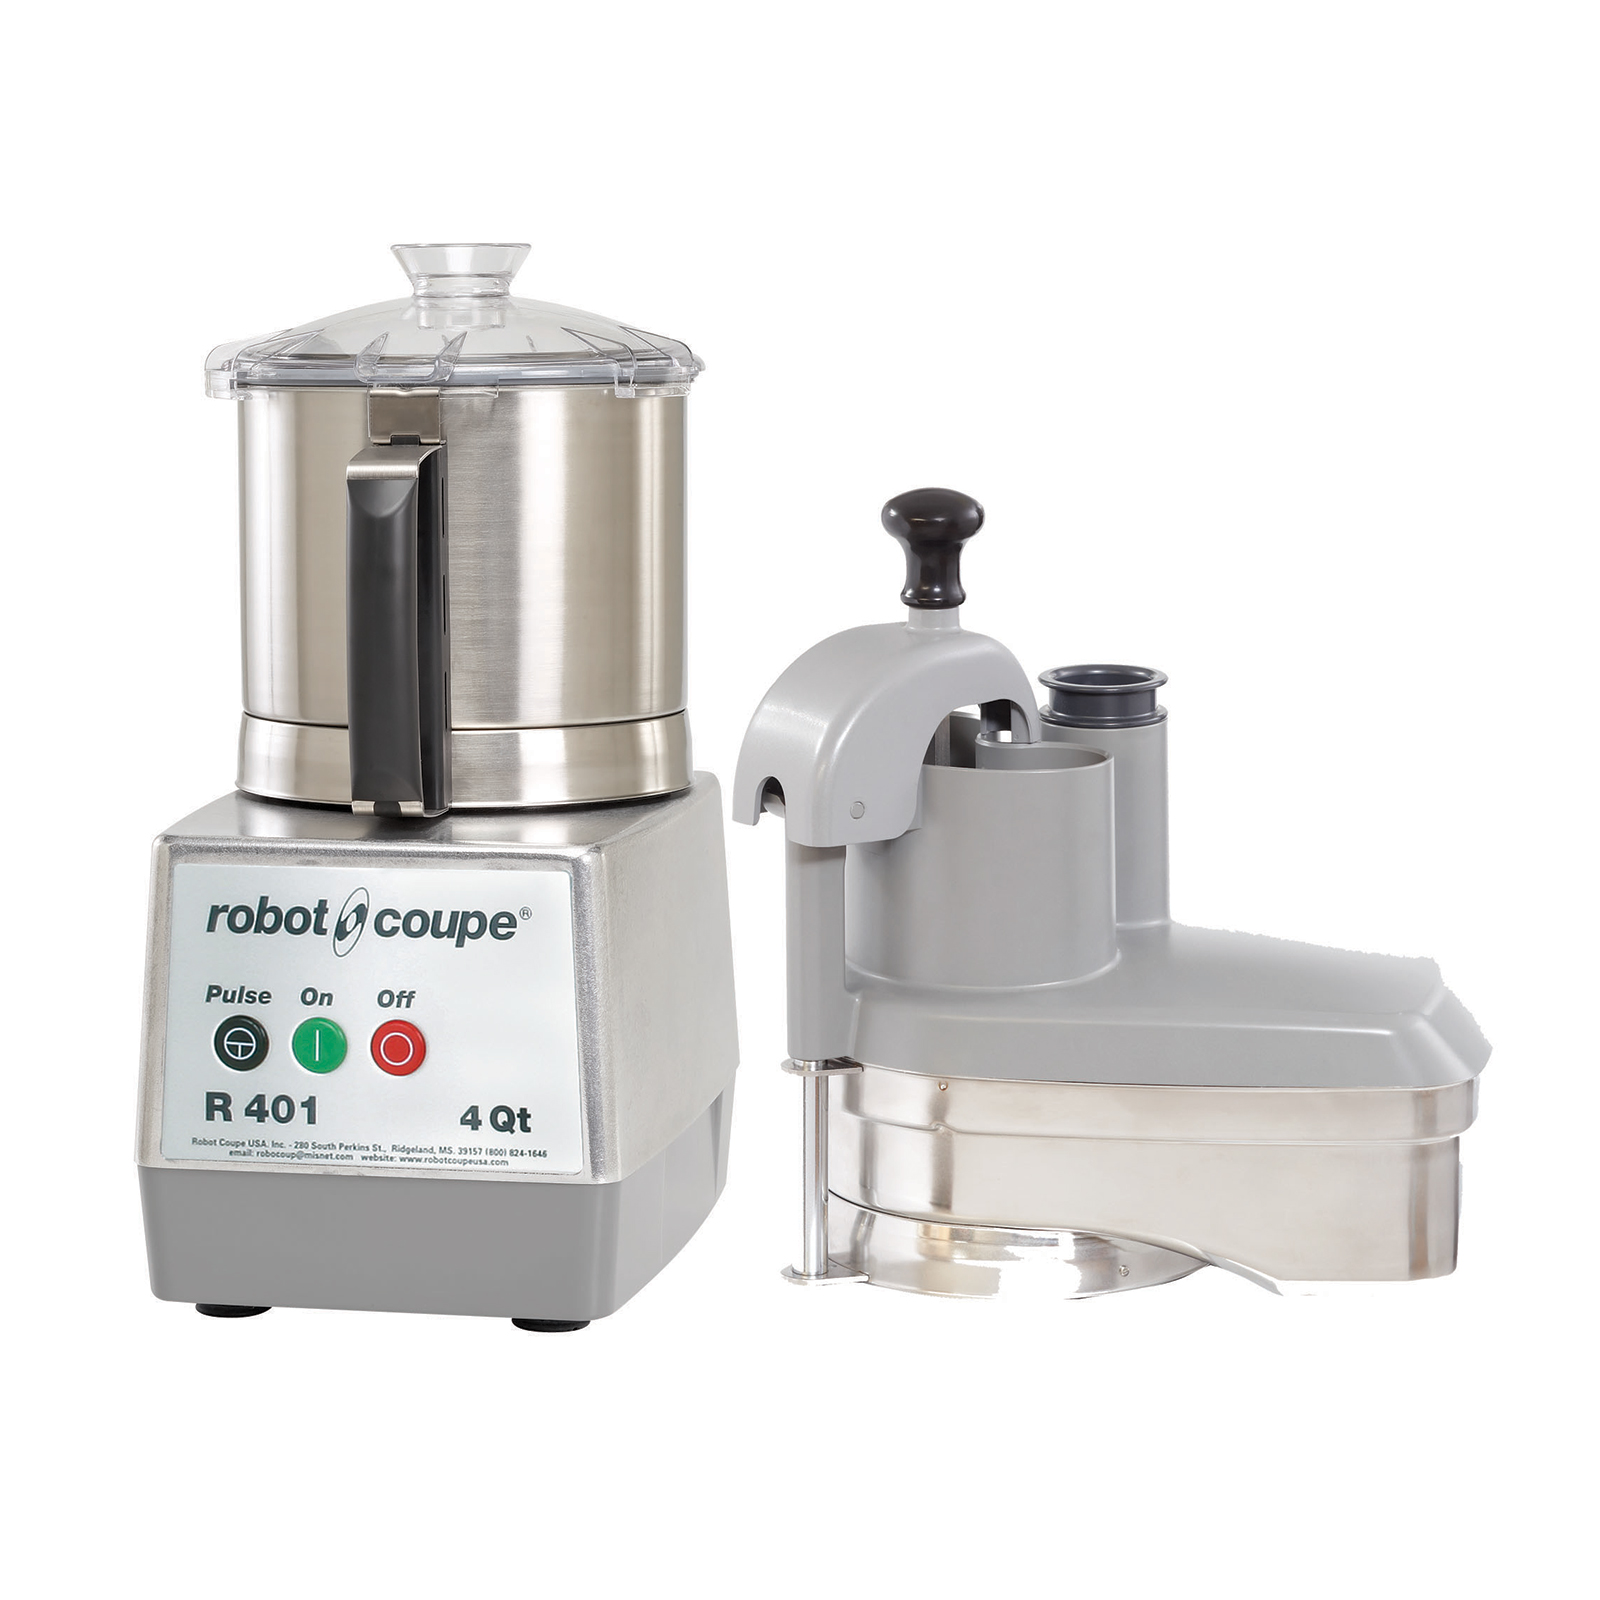 Robot Coupe R401 food processor, benchtop / countertop